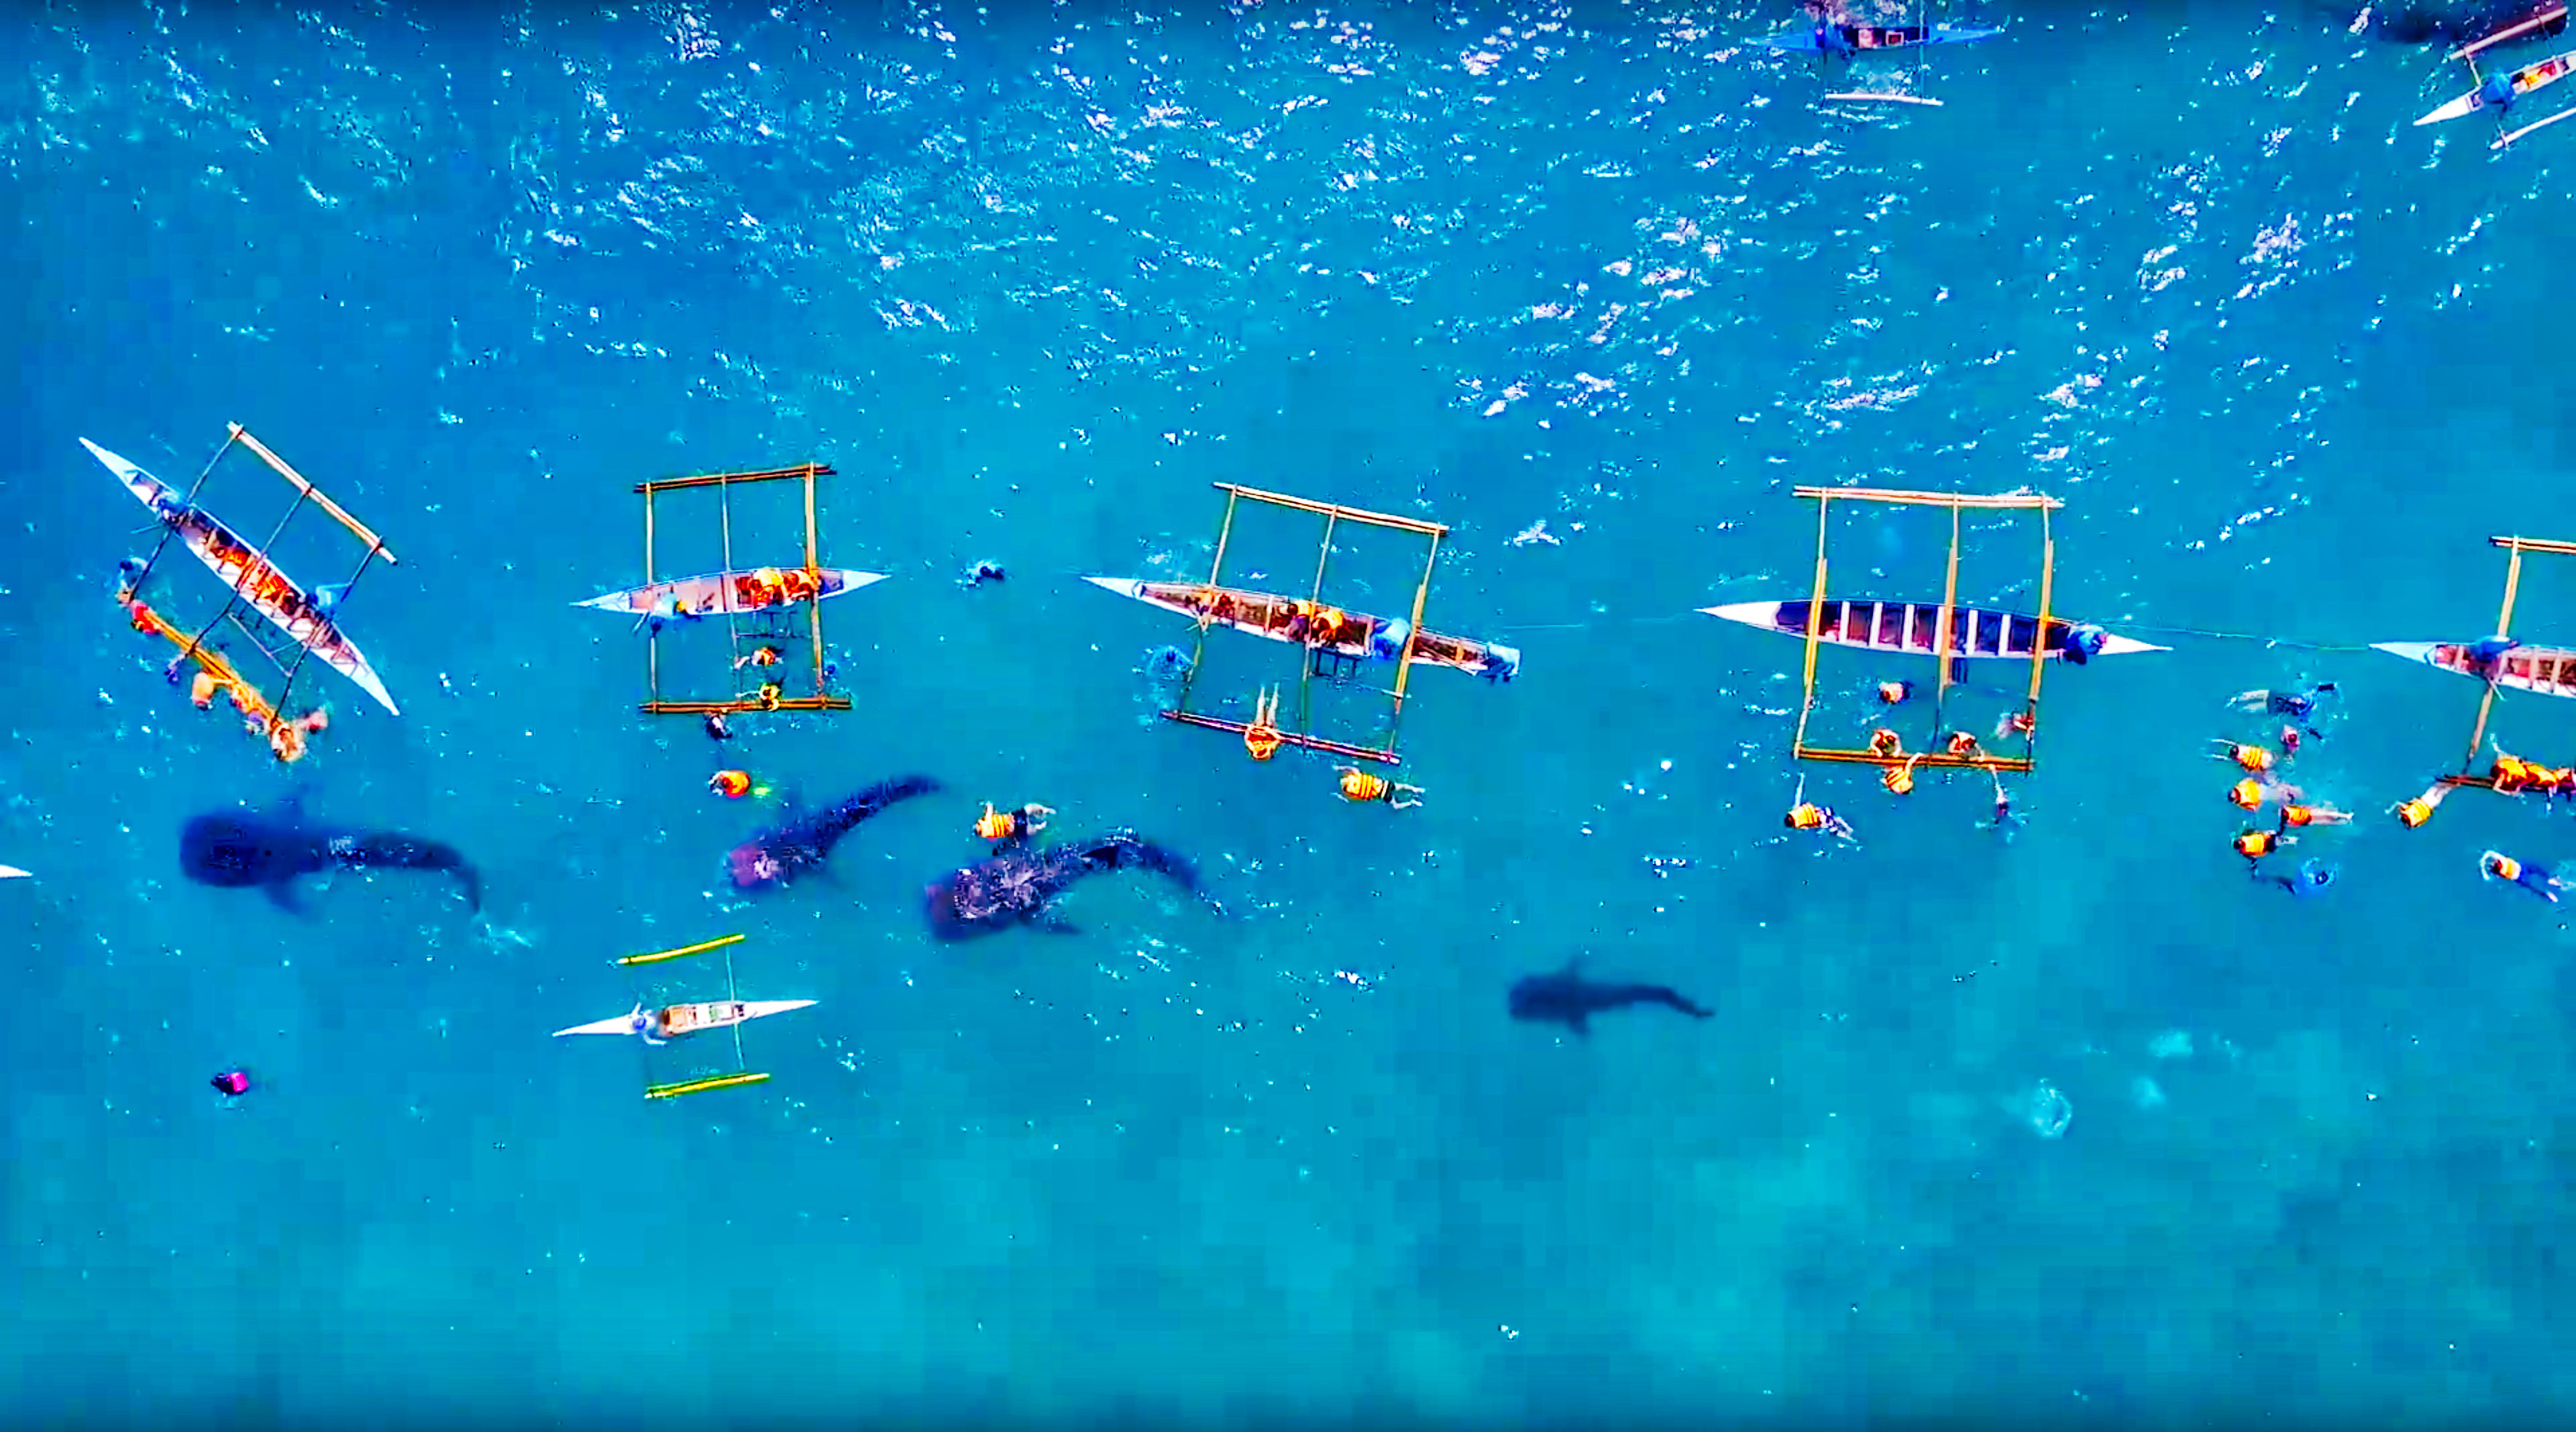 drone pilot with Whale Sharks Oslob Cebu Aerial View on B 17g Flying Fortress further Djis Smarter Phantom 4 Drone Can Avoid Obstacles And Track Objects All On Its Own further Top 10 Worst Airlines In The World 2016 additionally Missed Part 107 Test Prep Questions in addition Illinois Police Get Approval For Drone Use.